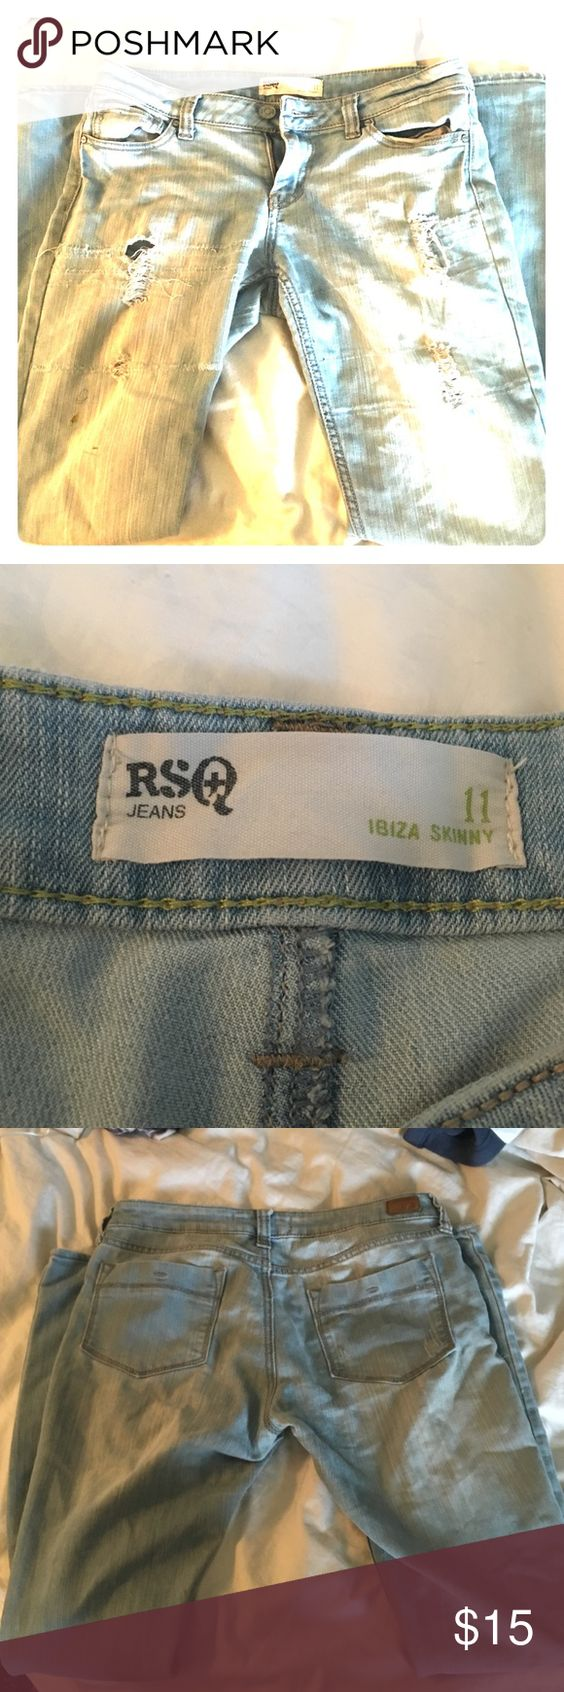 Light wash denim RSQ jeans size 11 MY BELOVED PAIR OF JEANS. These are awesome but I dropped a lot of weight and they won't fit me anymore. Super in tact and need a new home that will love them! These are RSQ brand and fit snugly with a little stretch. They have a couple acrylic paint stains on them as seen in the last picture but I think it adds a lot of character to them. They make your ass look great. They are super comfy. The best pair of jeans I've owned. Please give them a good home…